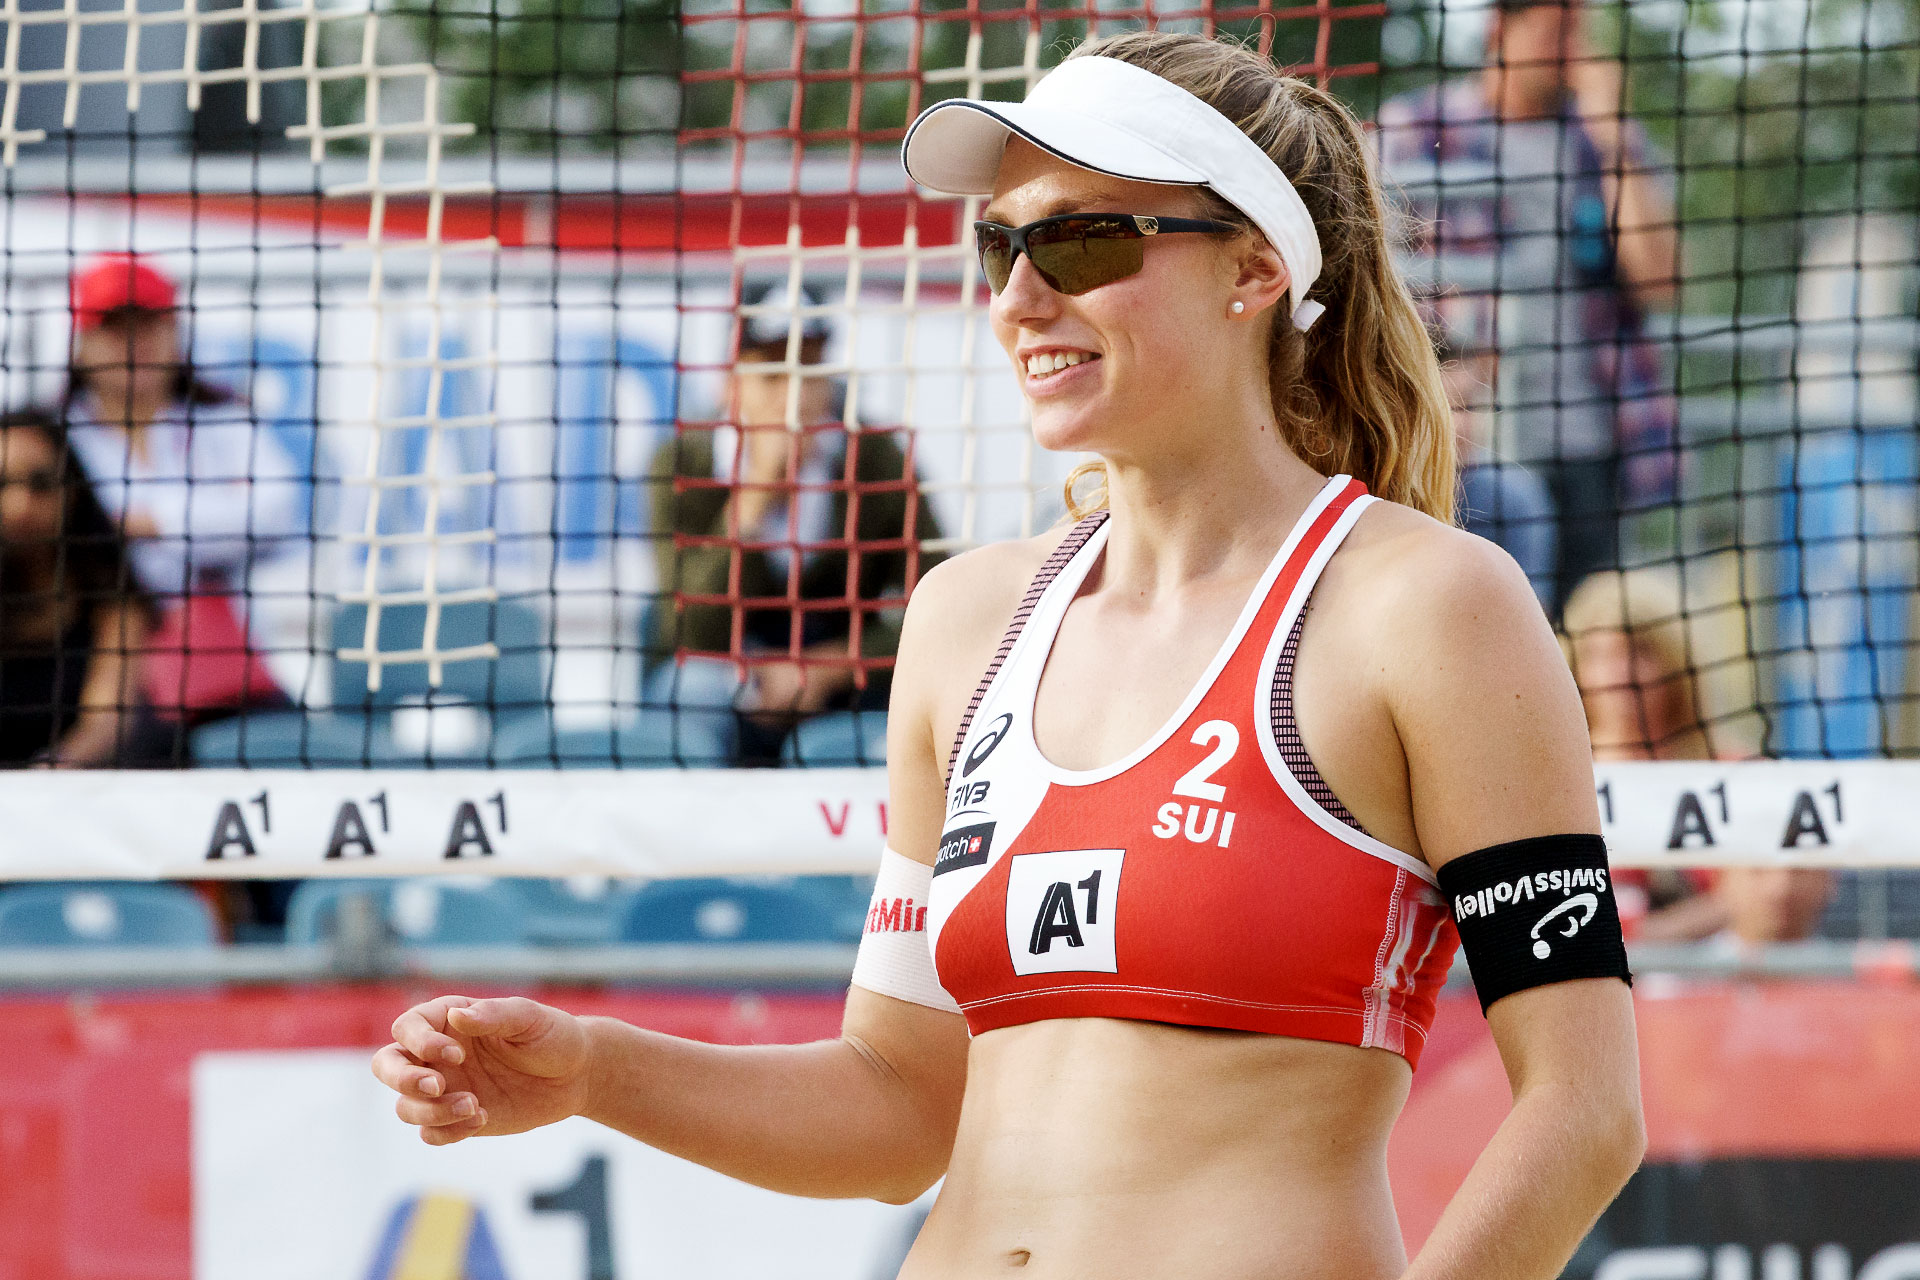 Beachvolleyball WM